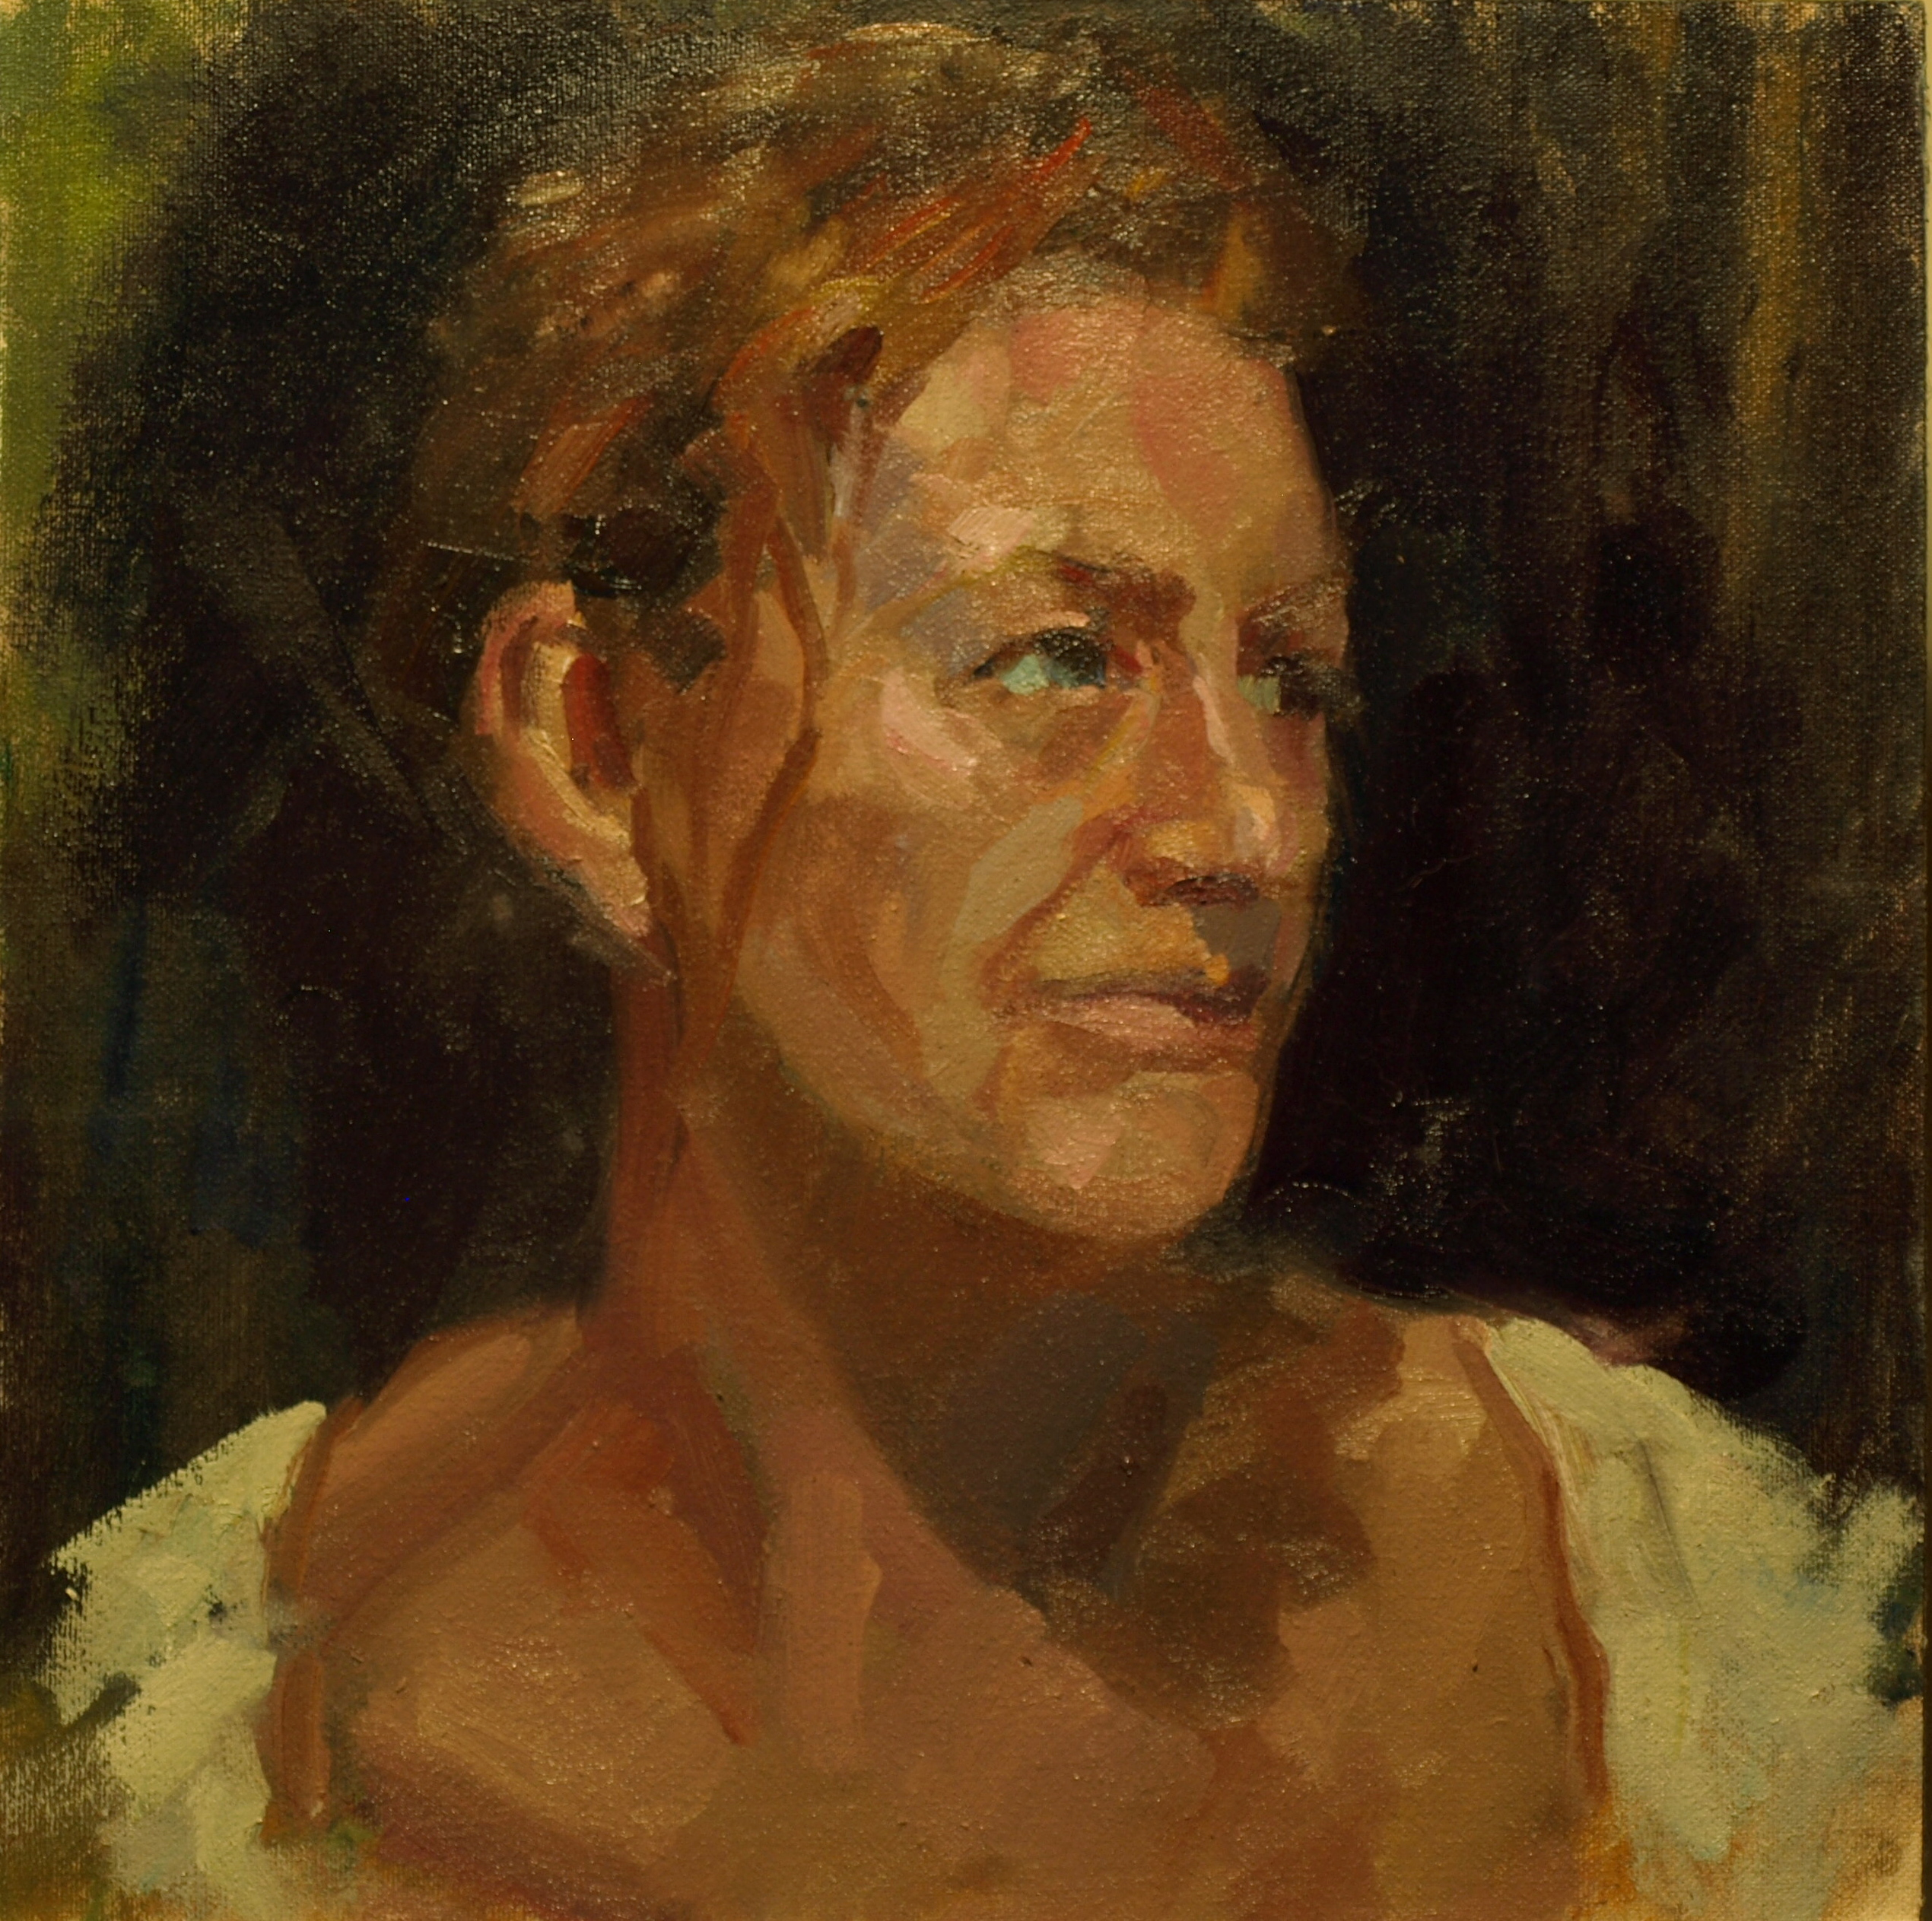 Martine in White, Oil on Canvas on Panel, 12 x 12 Inches, by Susan Grisell, $250